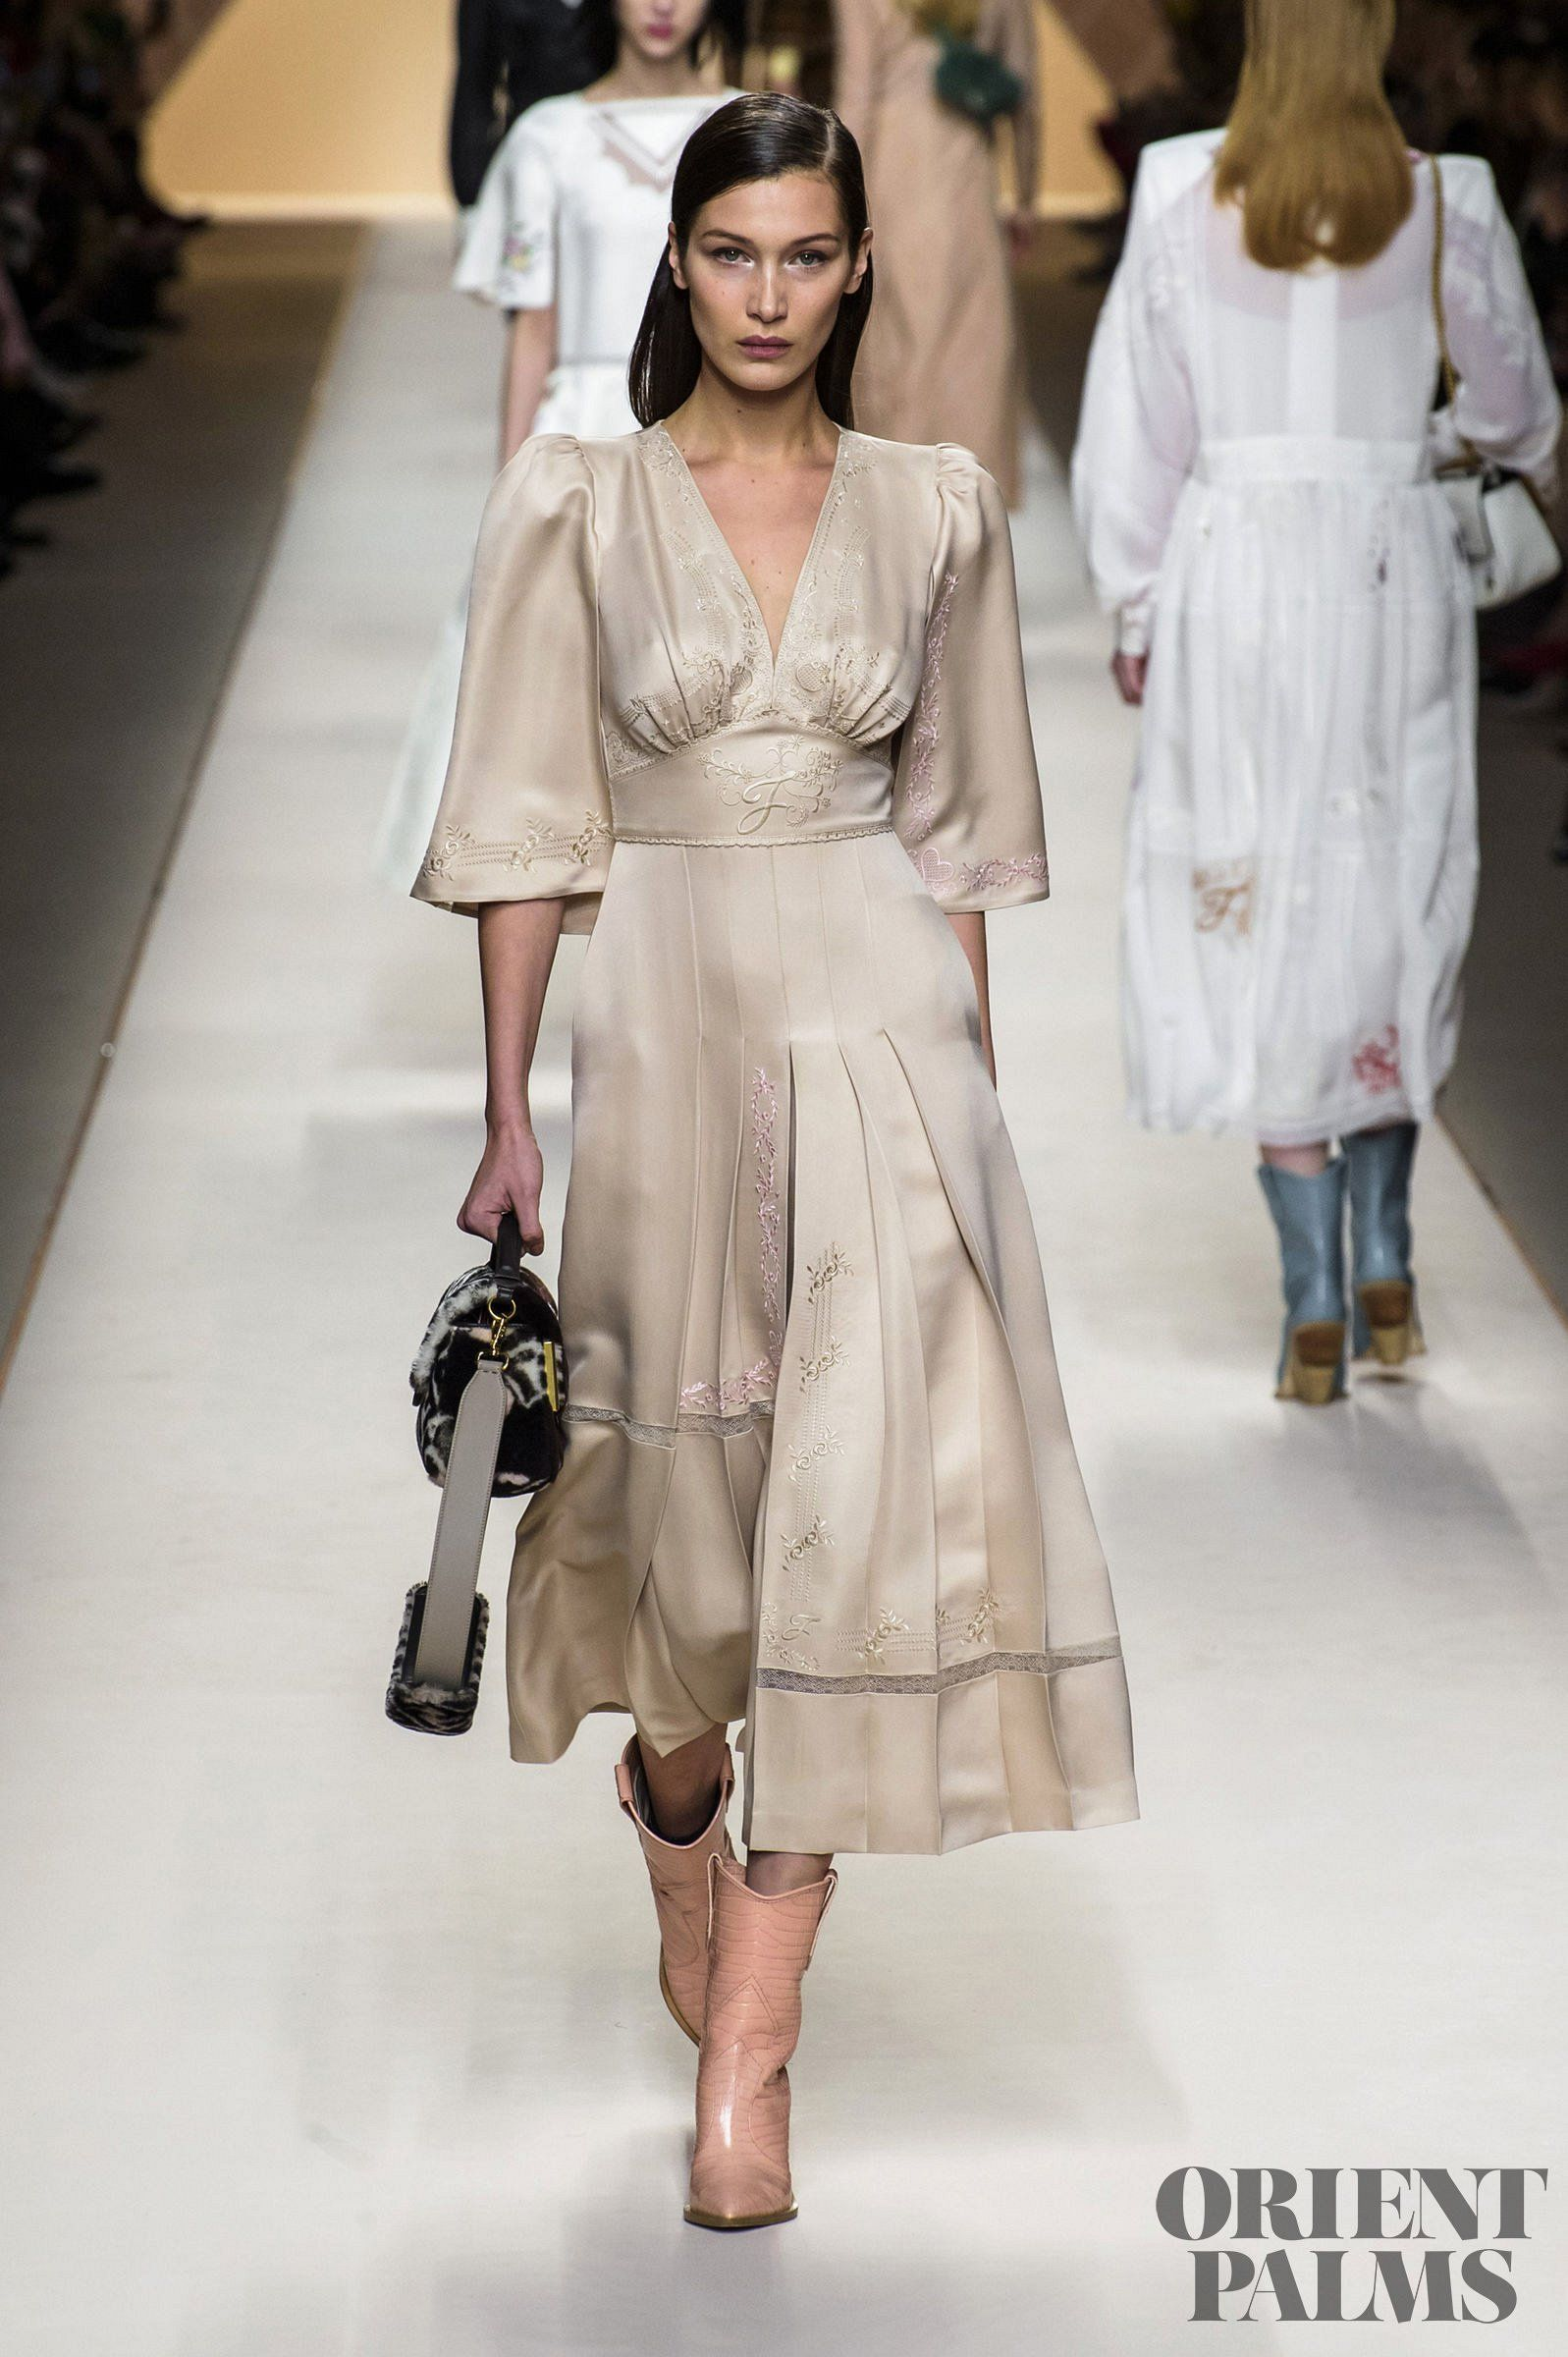 1d4ea4e4191c Fendi Fall-winter 2018-2019 - Ready-to-Wear  clothes  beautifulclothes   fashion  apparel  fashiontrends  style  stylewatch  styletrends   fashioninspiration ...